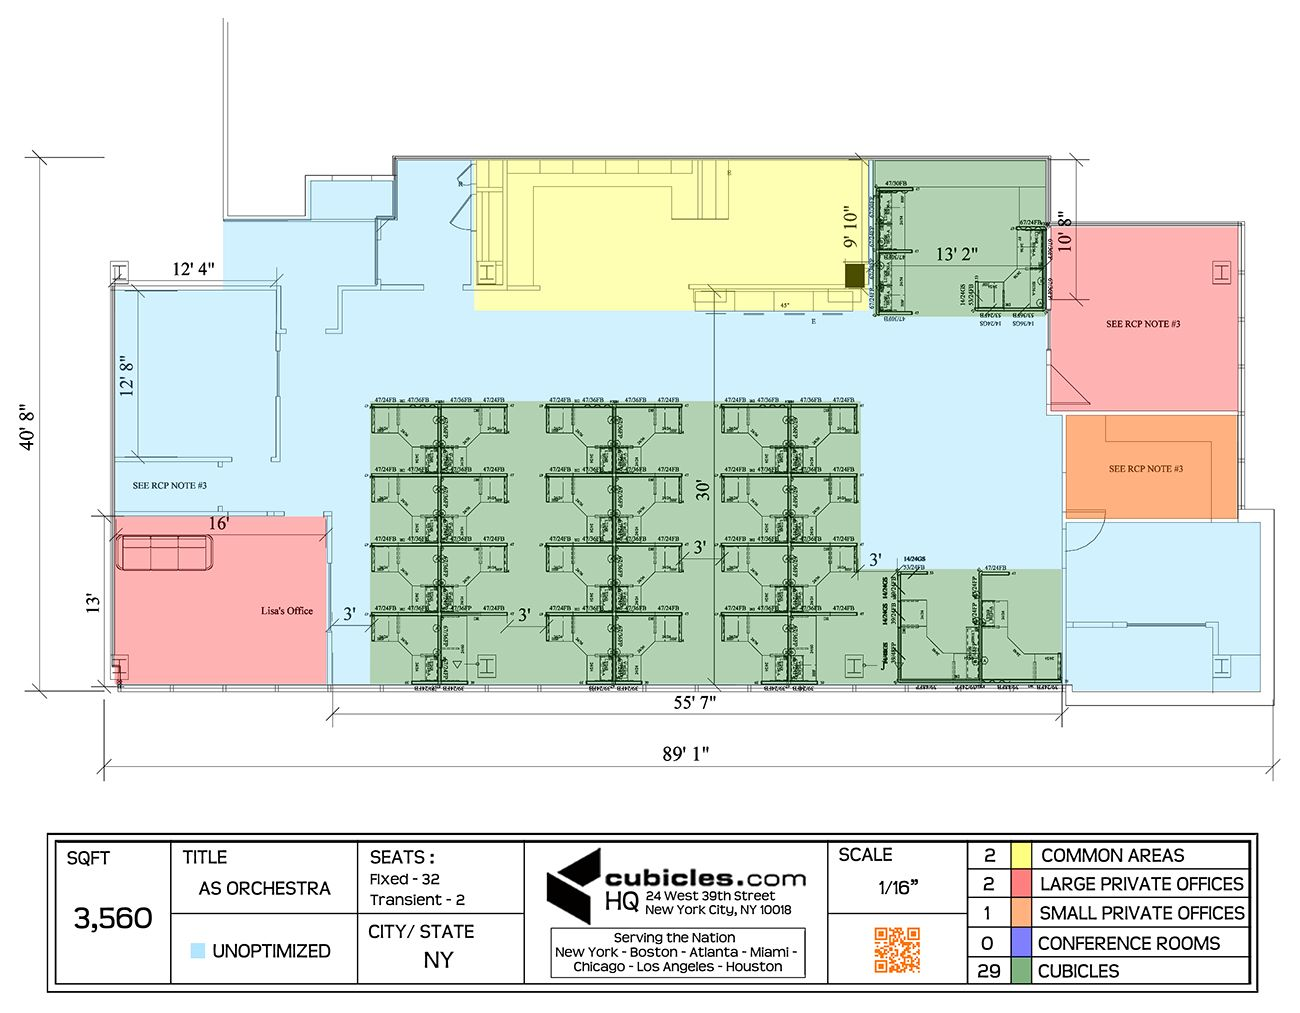 office cubicle layout ideas. Office Layout Plan With 29 Cubicles For 32 People On SQFT 3,560. #officelayout Cubicle Ideas X